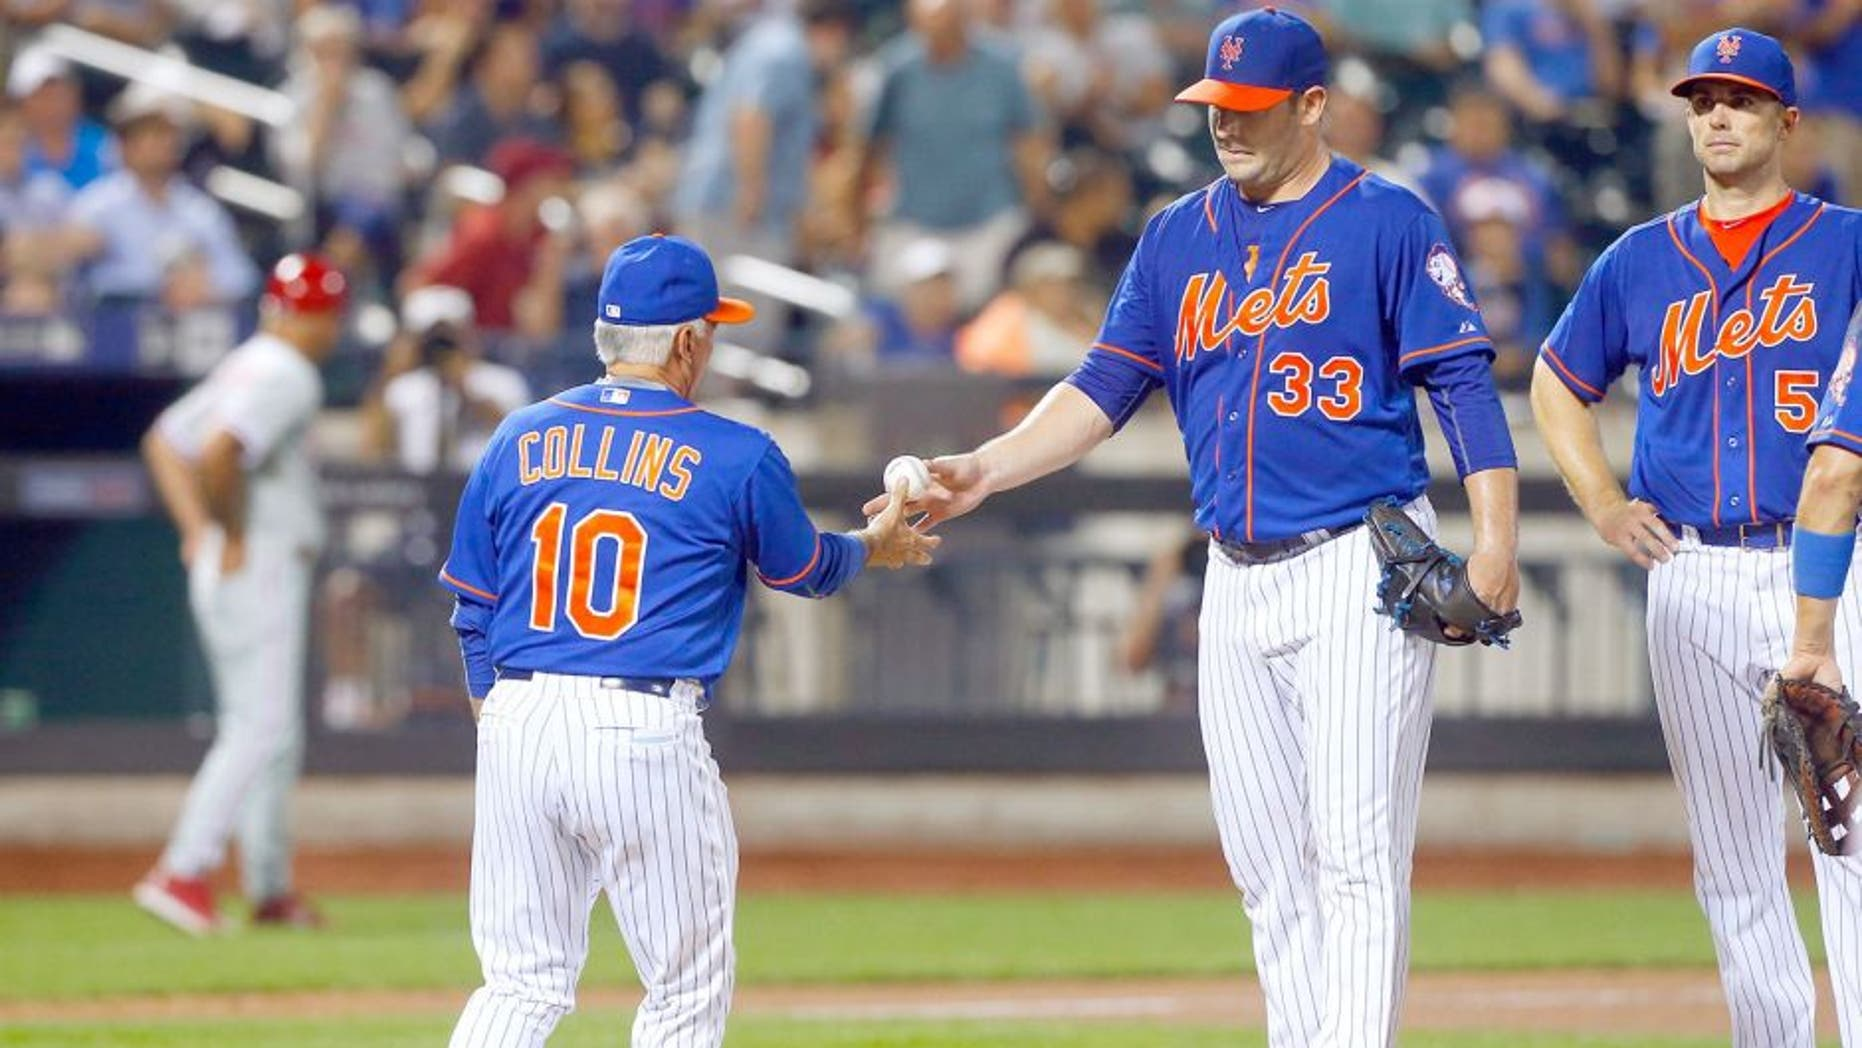 NEW YORK, NY - SEPTEMBER 02: Matt Harvey #33 of the New York Mets hands the ball to manager Terry Collins #10 against the Philadelphia Phillies at Citi Field on September 2, 2015 in the Flushing neighborhood of the Queens borough of New York City. The Mets defeated the Phillies 9-4. (Photo by Jim McIsaac/Getty Images)